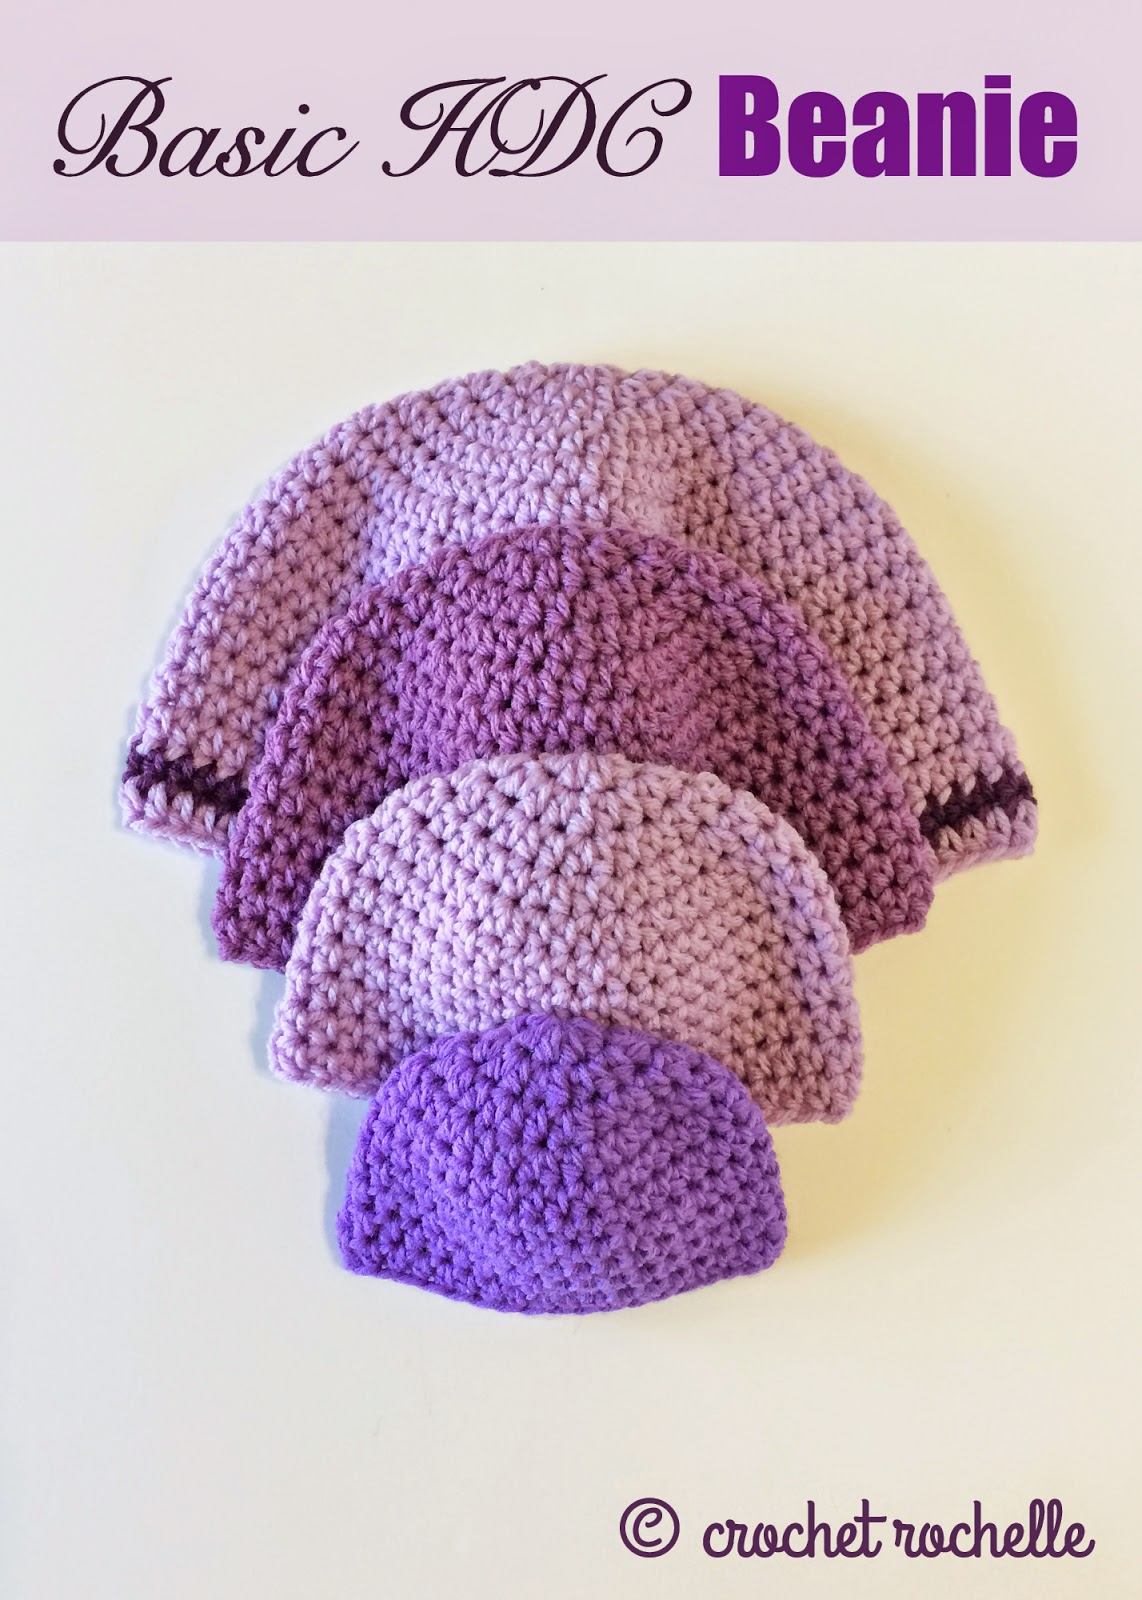 ... pattern for a basic half double crochet beanie this past wednesday the